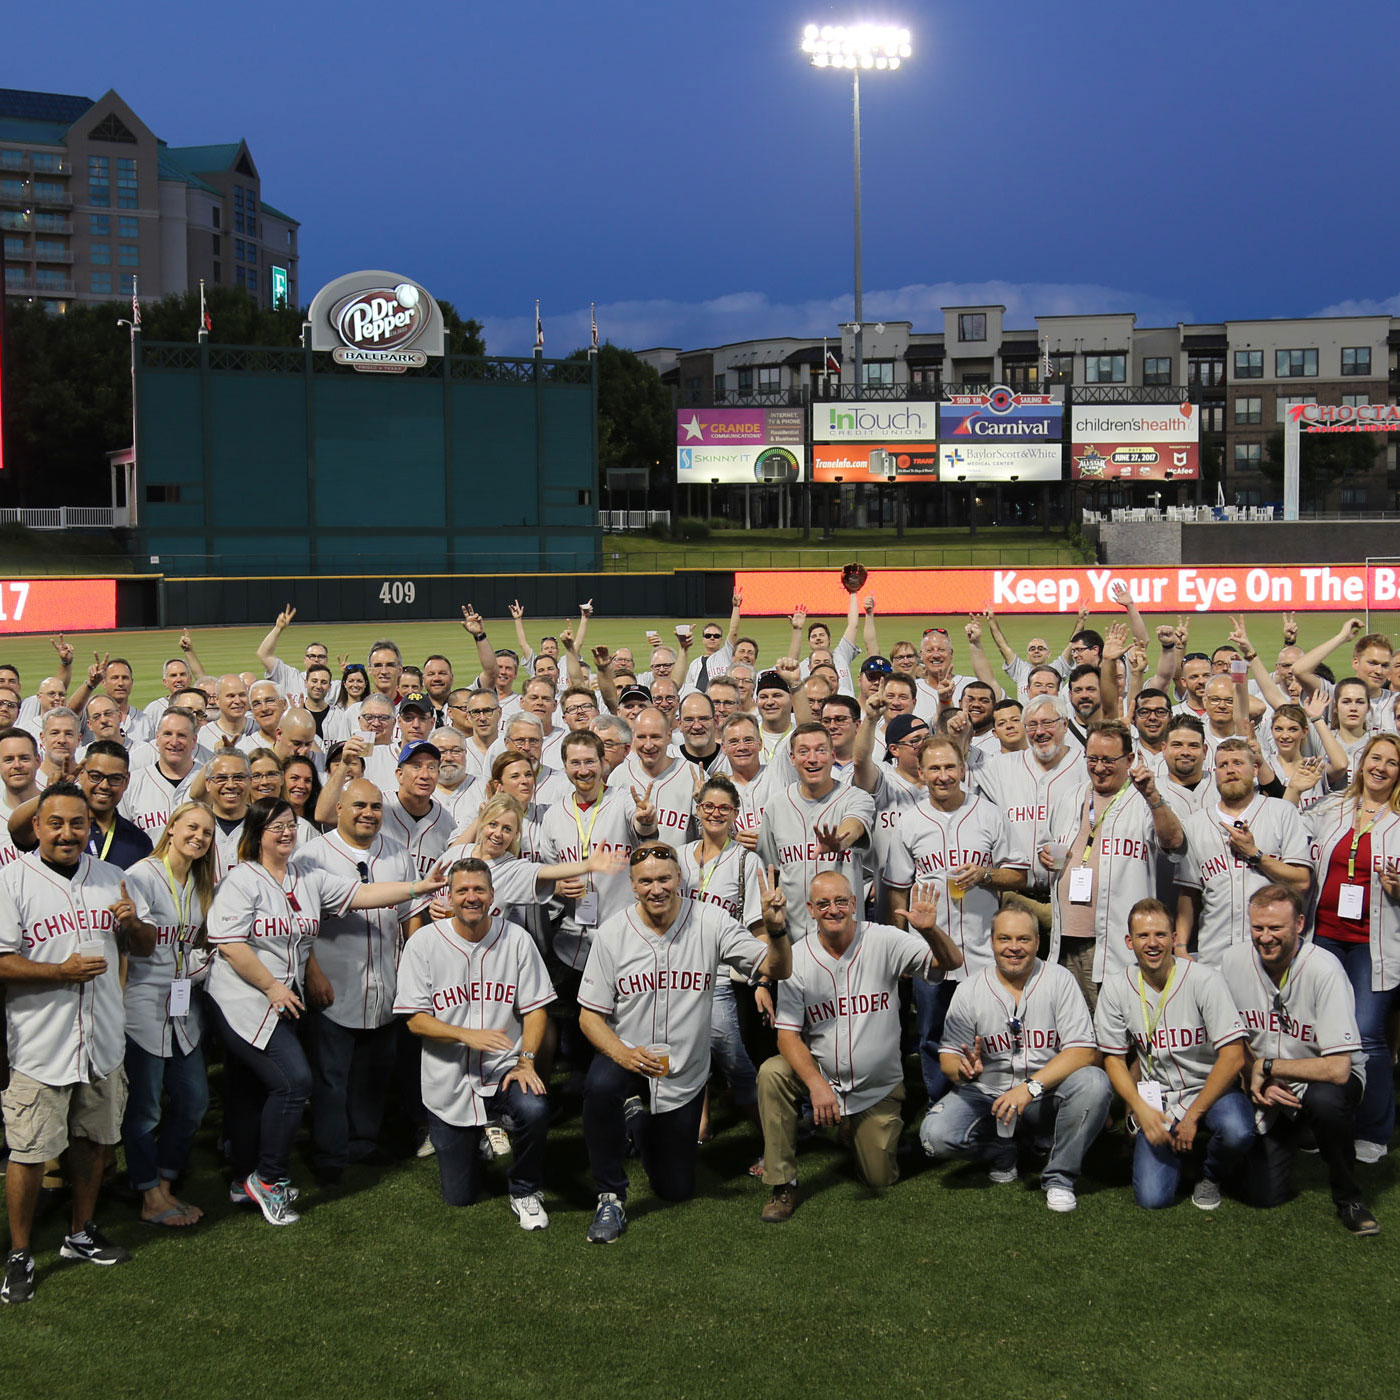 SCHNEIDER teams plays ball at baseball stadion in Frisco